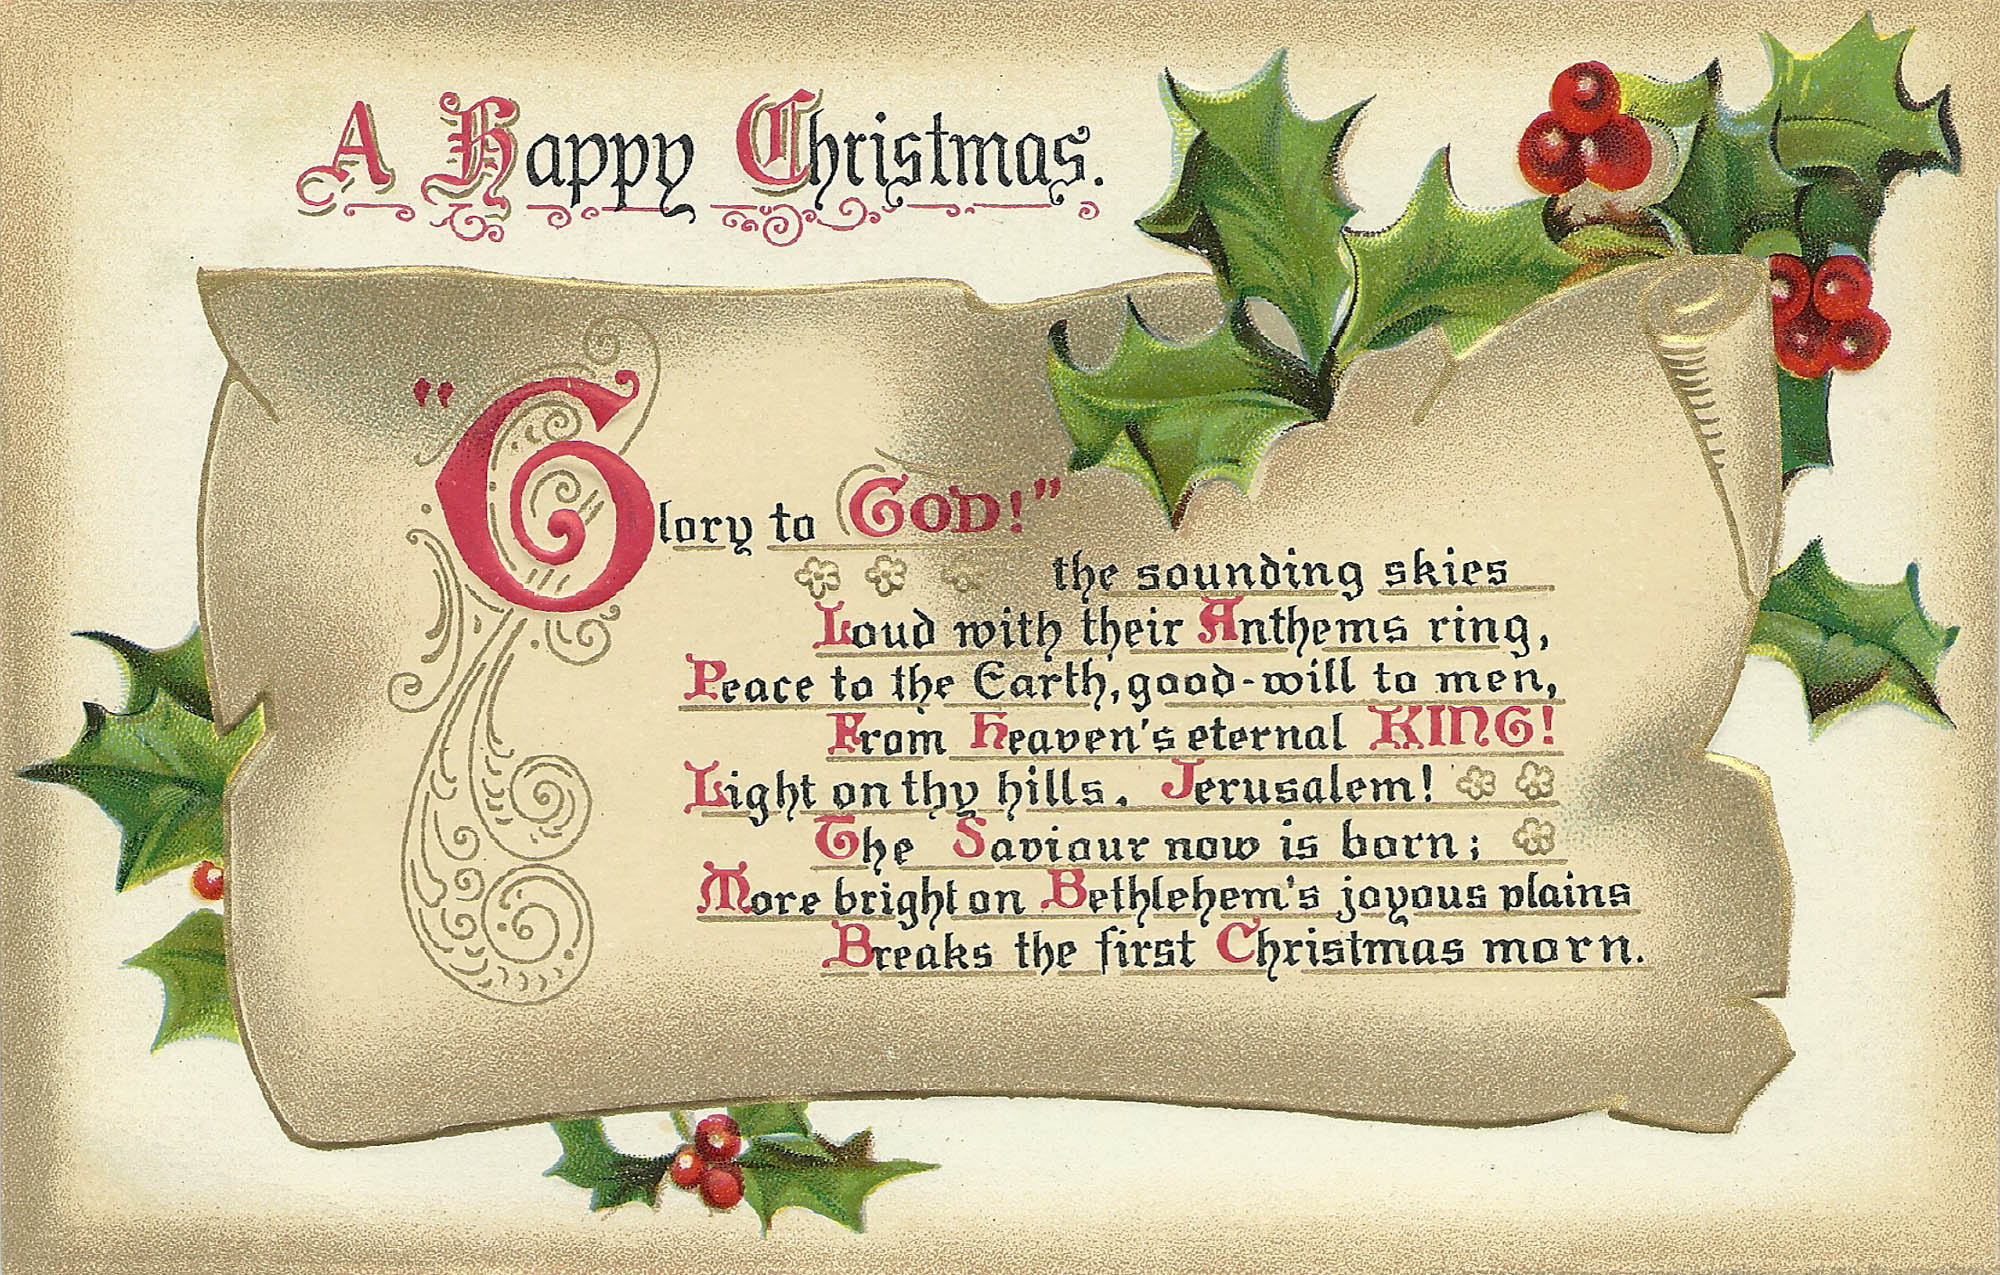 Meaning of 12 days of christmas - Another Old Christmas Postcard This Has Some Religious Sentiments To Remember The Original Meaning Of The Day